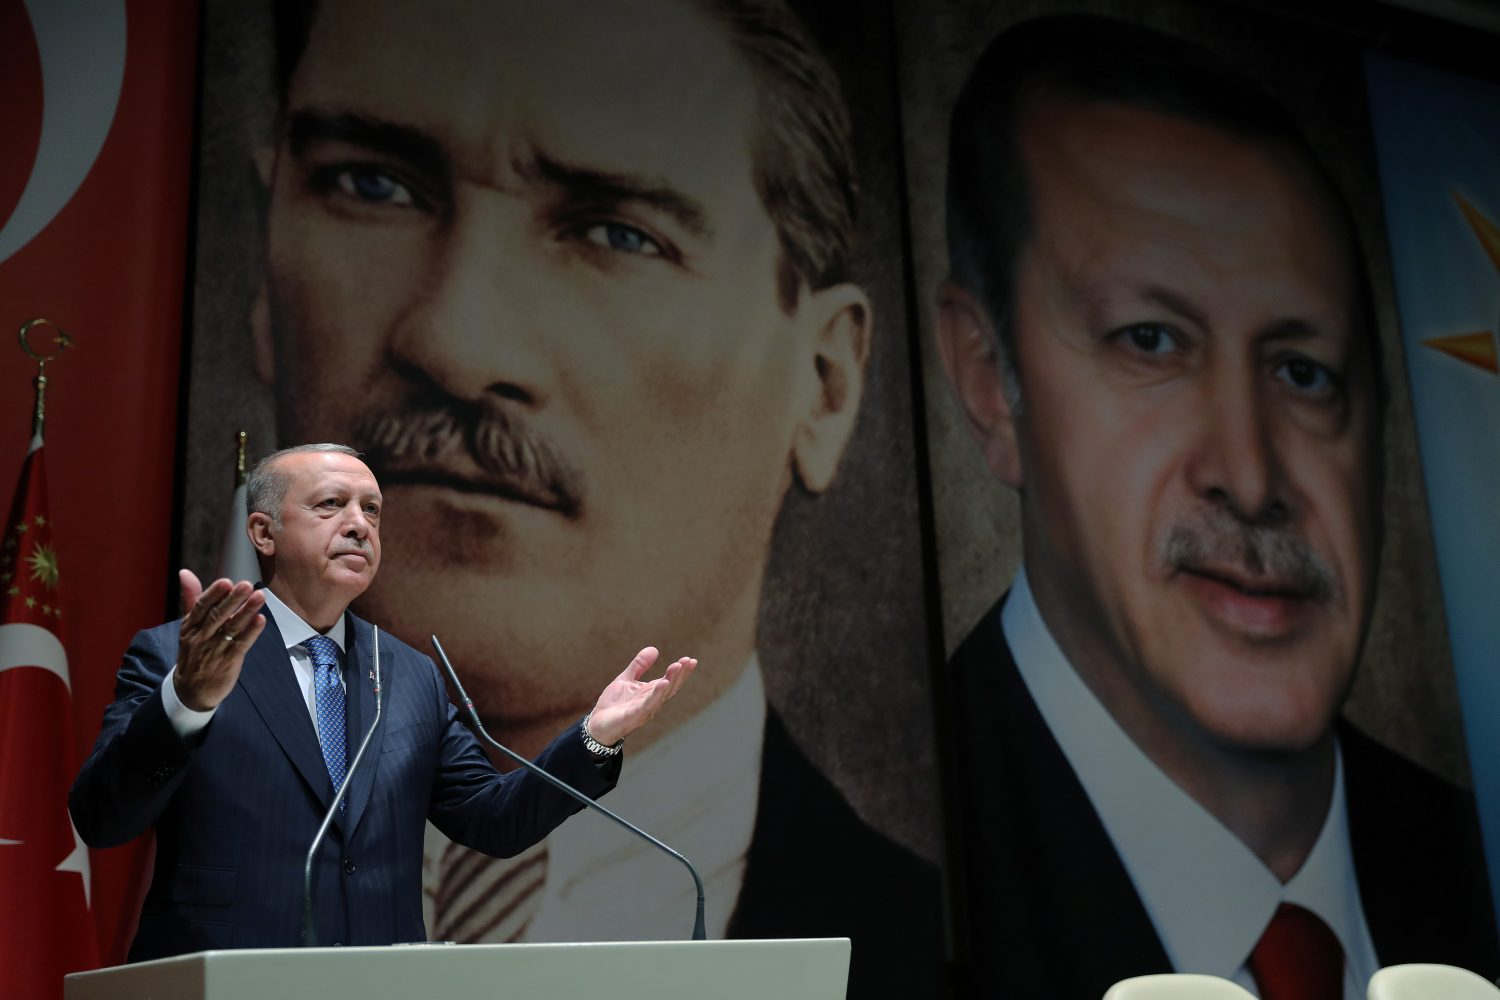 Turkish President Tayyip Erdogan speaks during a meeting of his ruling AK Party in Ankara, Turkey, July 26, 2019. Cem Oksuz/Presidential Press Office/Handout via REUTERS